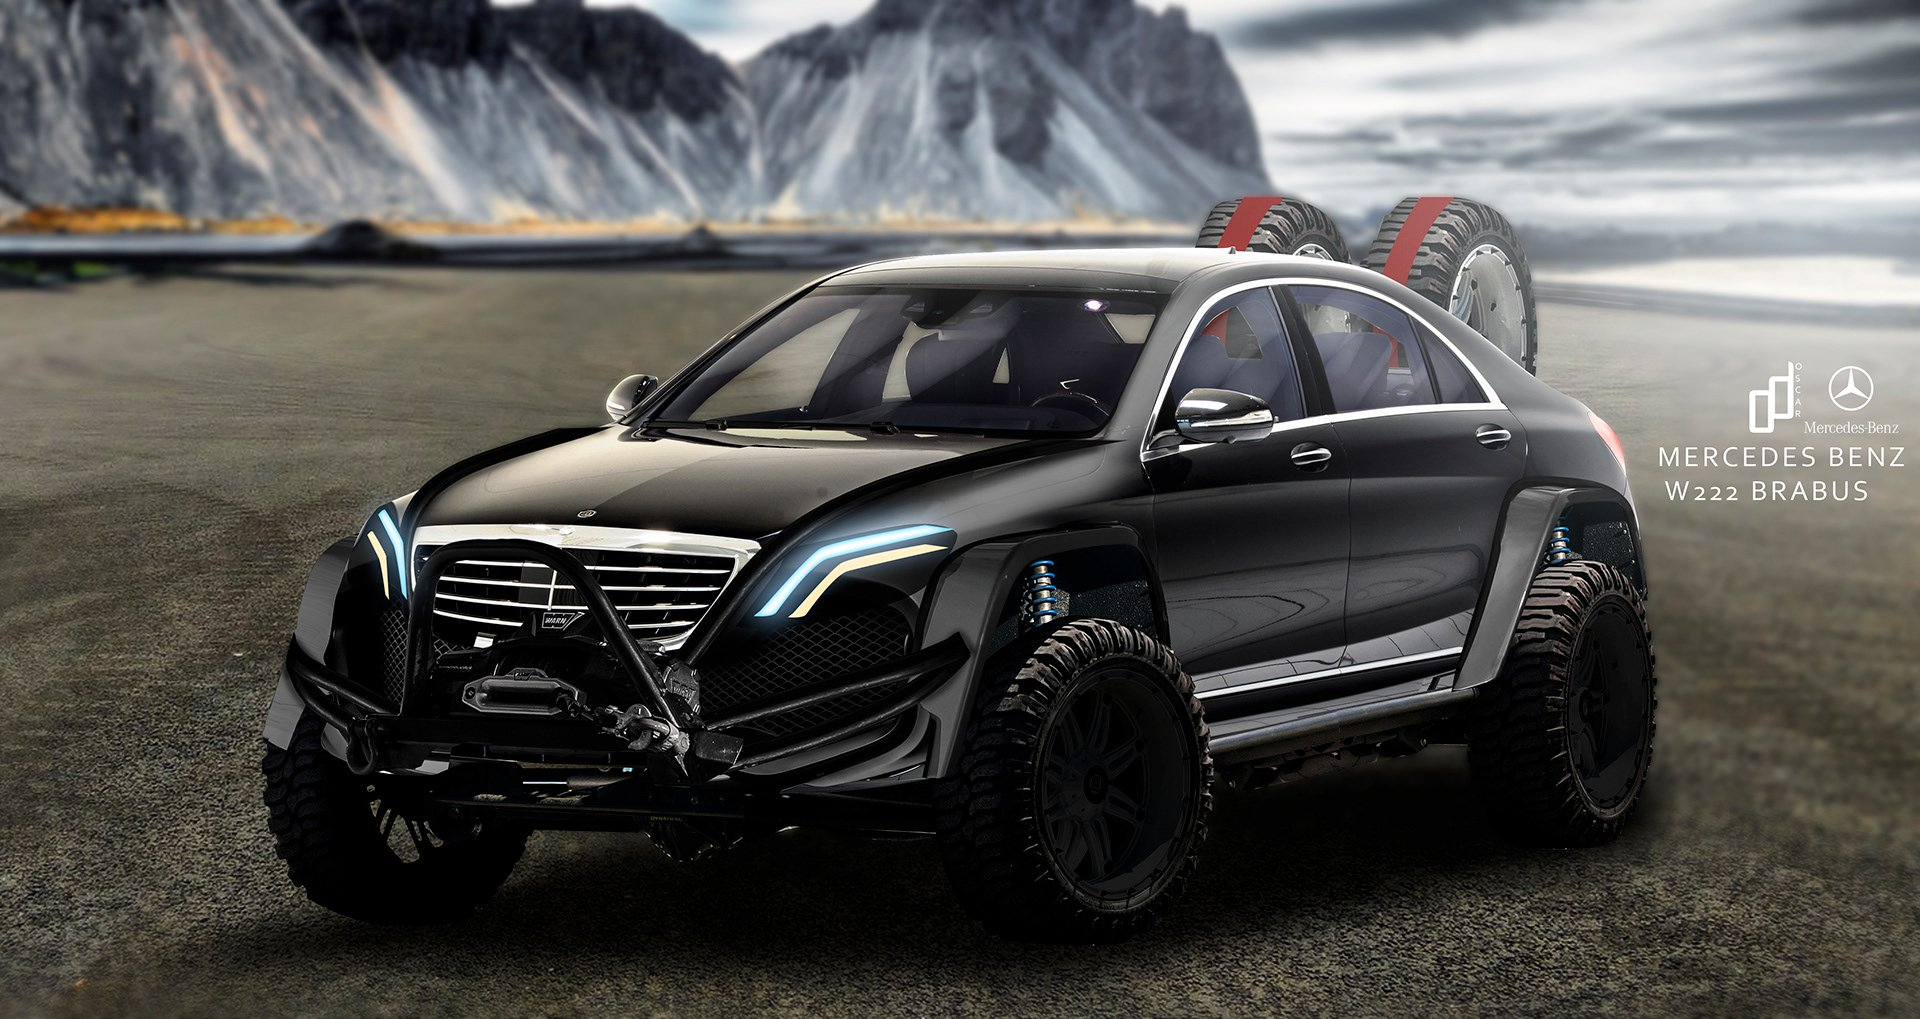 Mercedes Benz Of Boston >> Brabus Mercedes S-Class - As ridiculous as can be